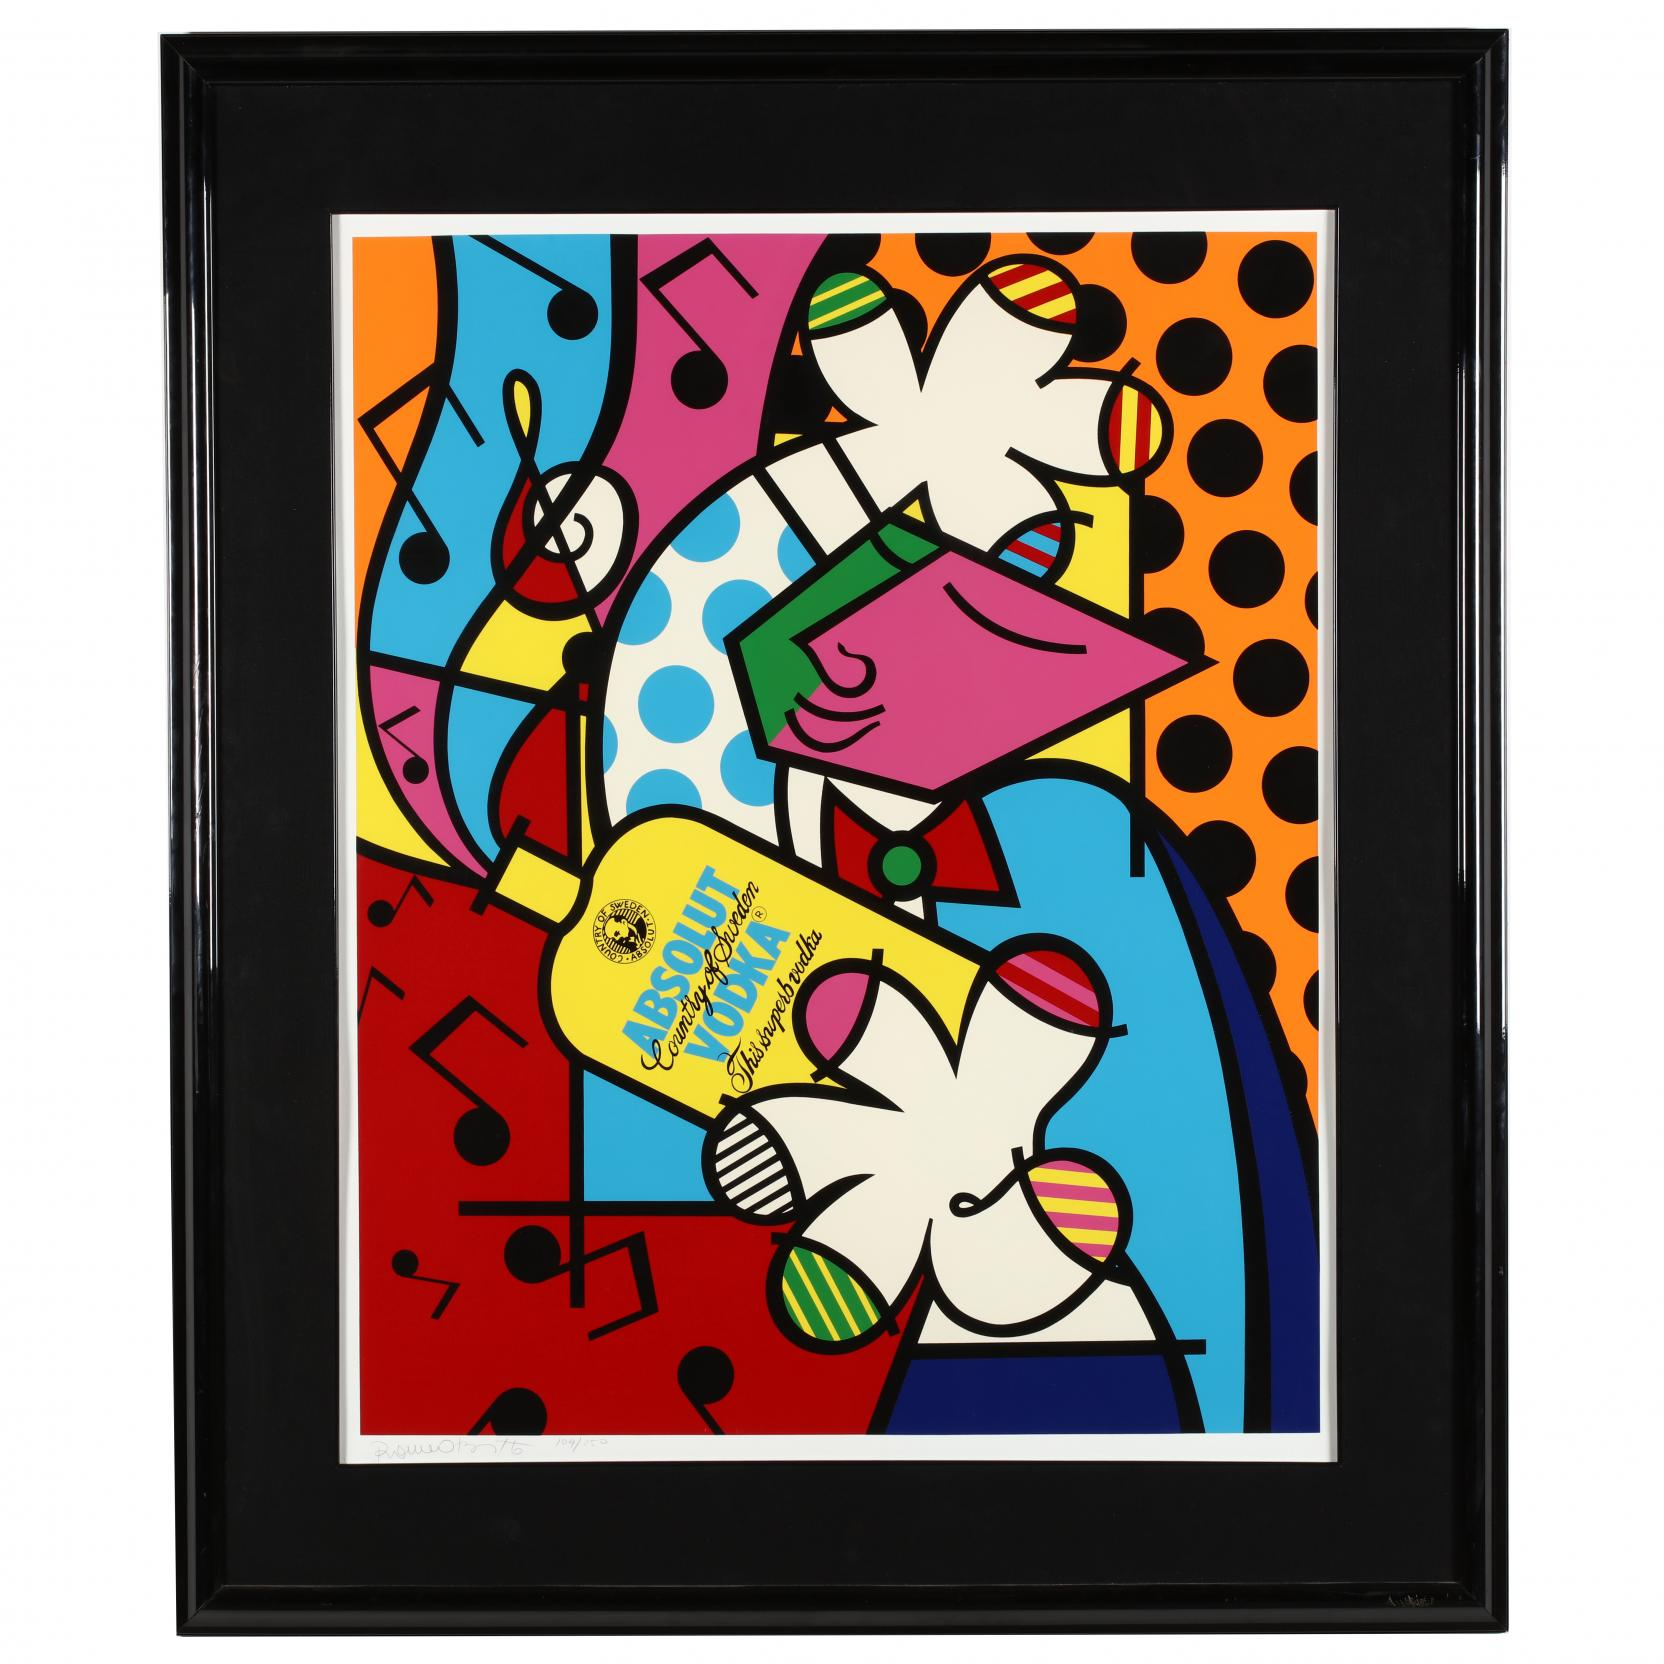 romero-britto-brazilian-b-1963-i-absolut-britto-ii-i